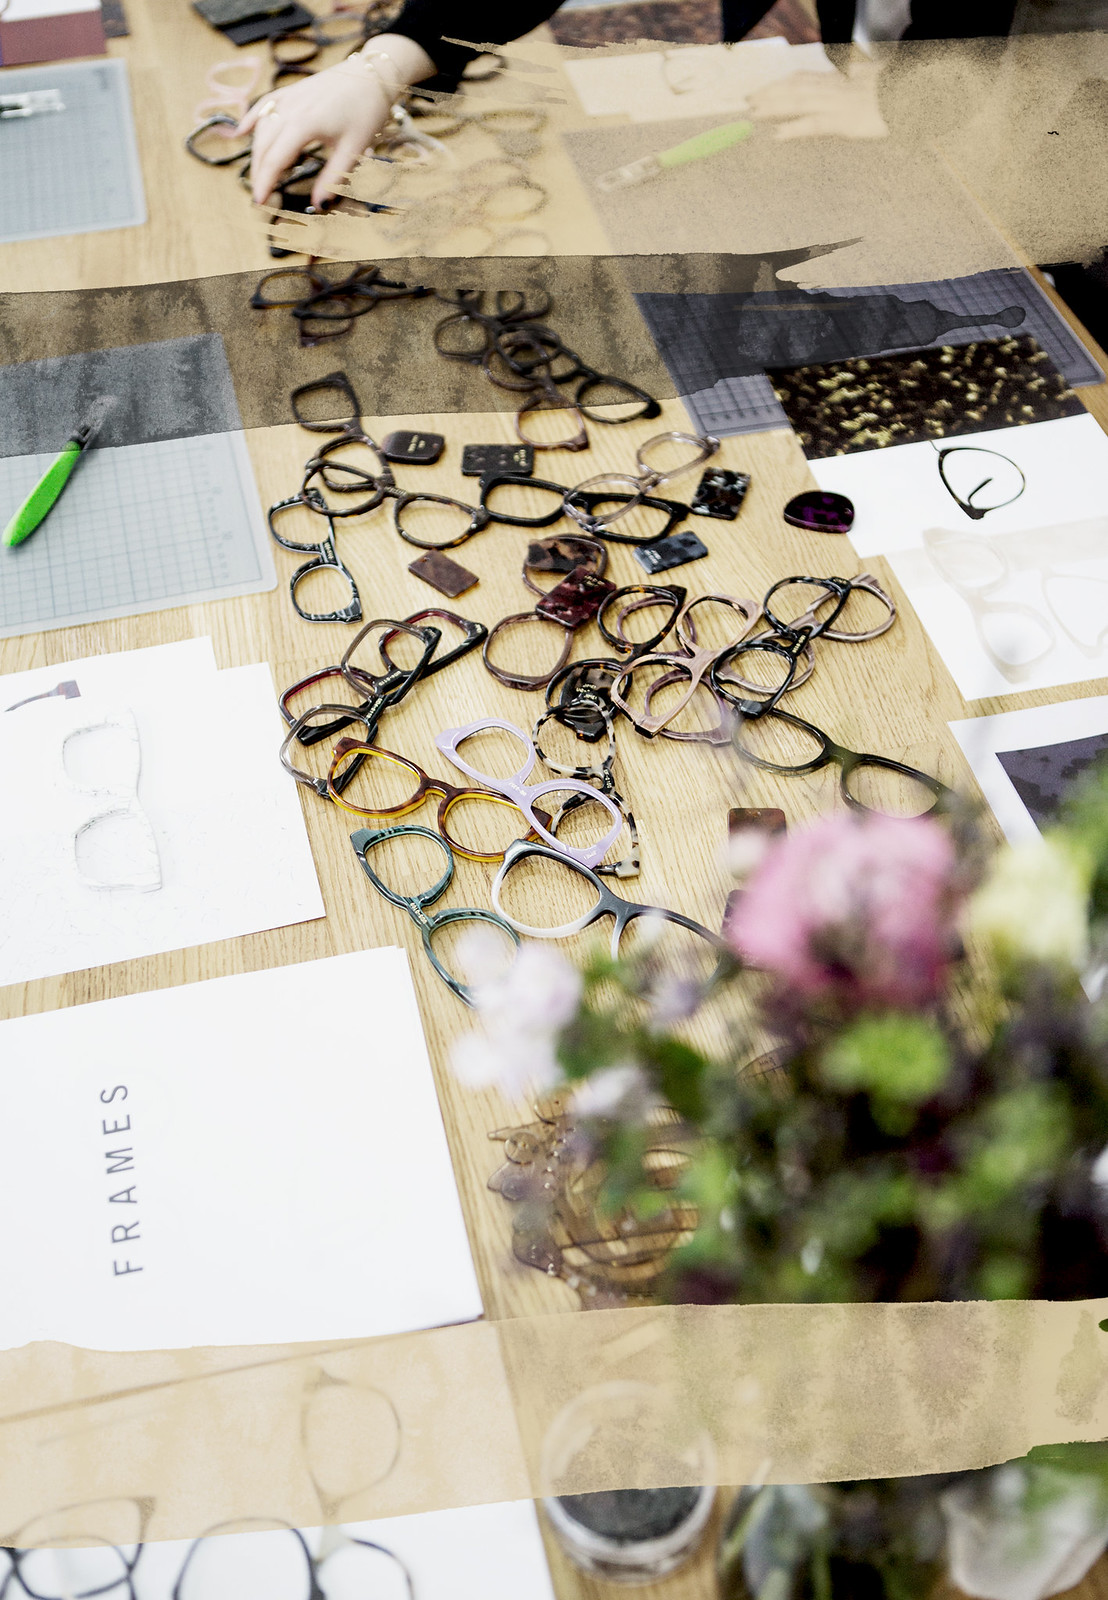 design day mister spex behind the scenes blogger workshop bloggers glasses collection creating diy art selfmade how to beauty beautiful fun girlfriends ricarda schernus fashionblogger cats & dogs modeblog berlin fashionblogger 4